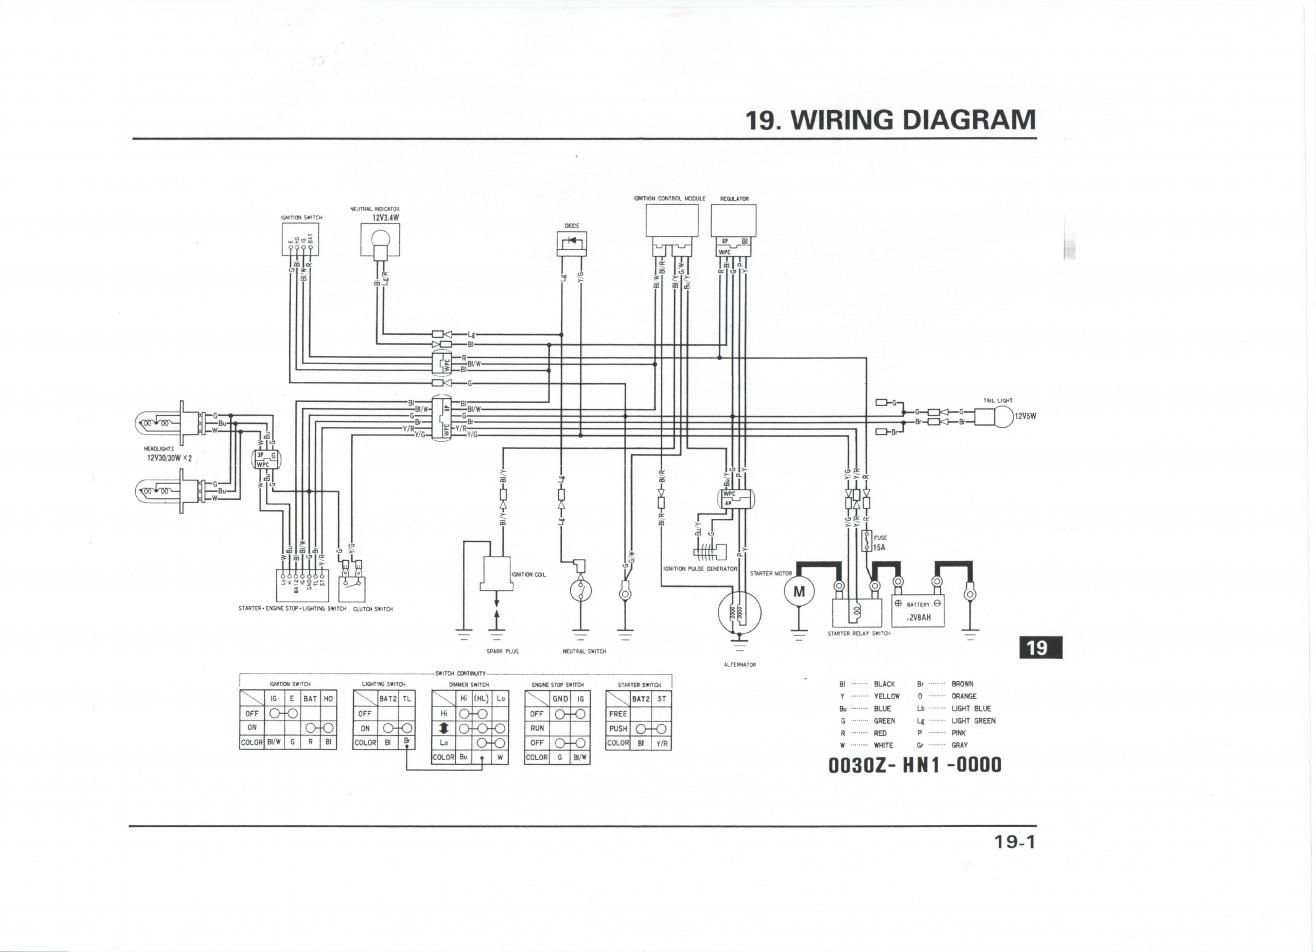 hight resolution of 99 honda fourtrax 300 wiring diagram free picture wiring diagramtrx300ex wiring diagram automotive wiring diagrams 1986